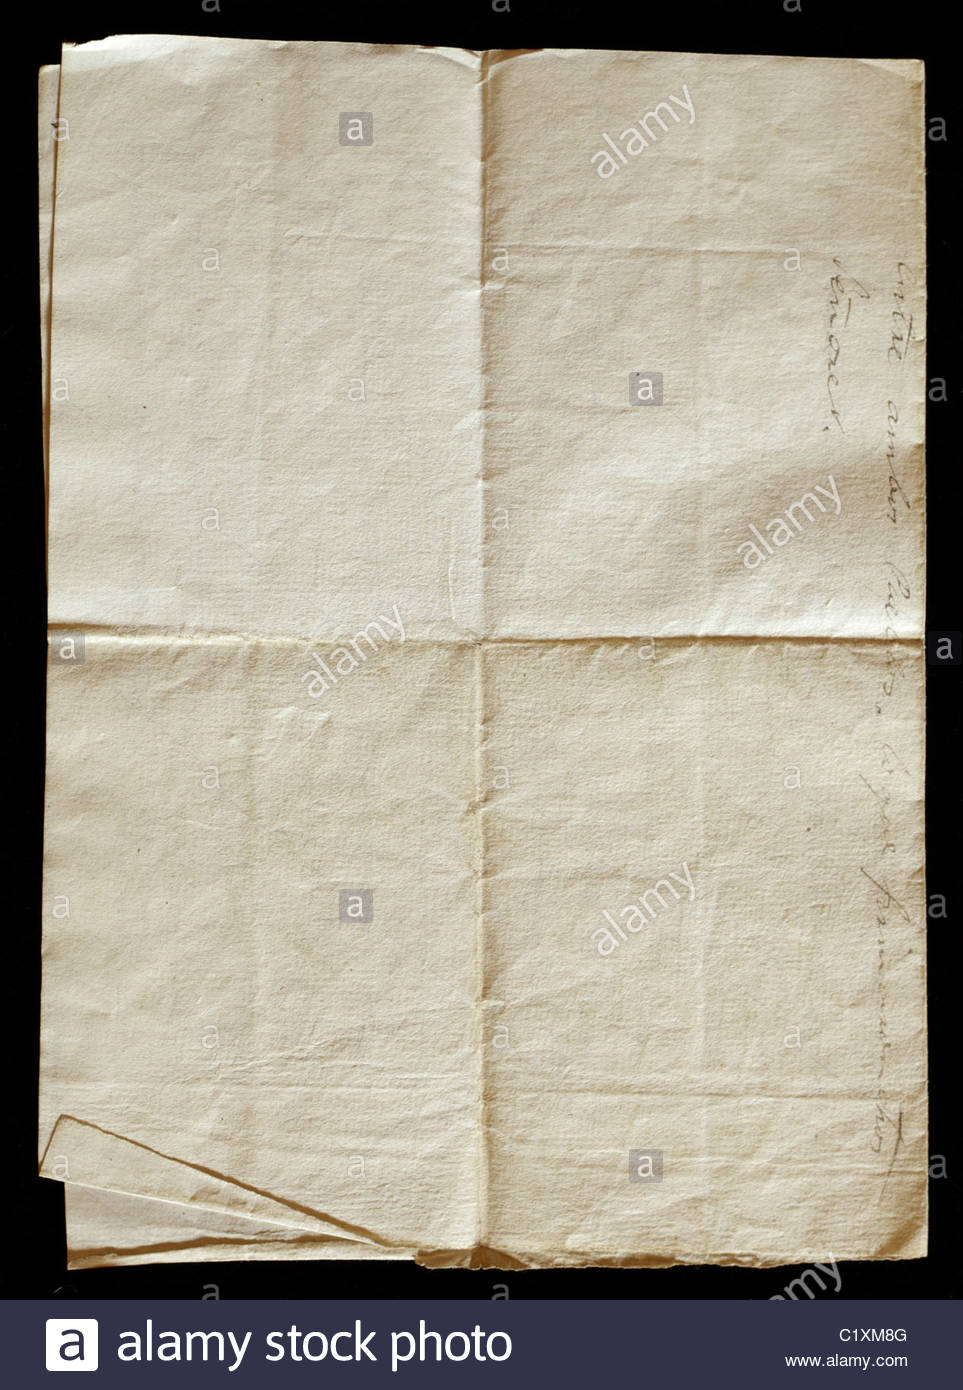 Old Letter Folded Stock Photos  Old Letter Folded Stock Images  Alamy